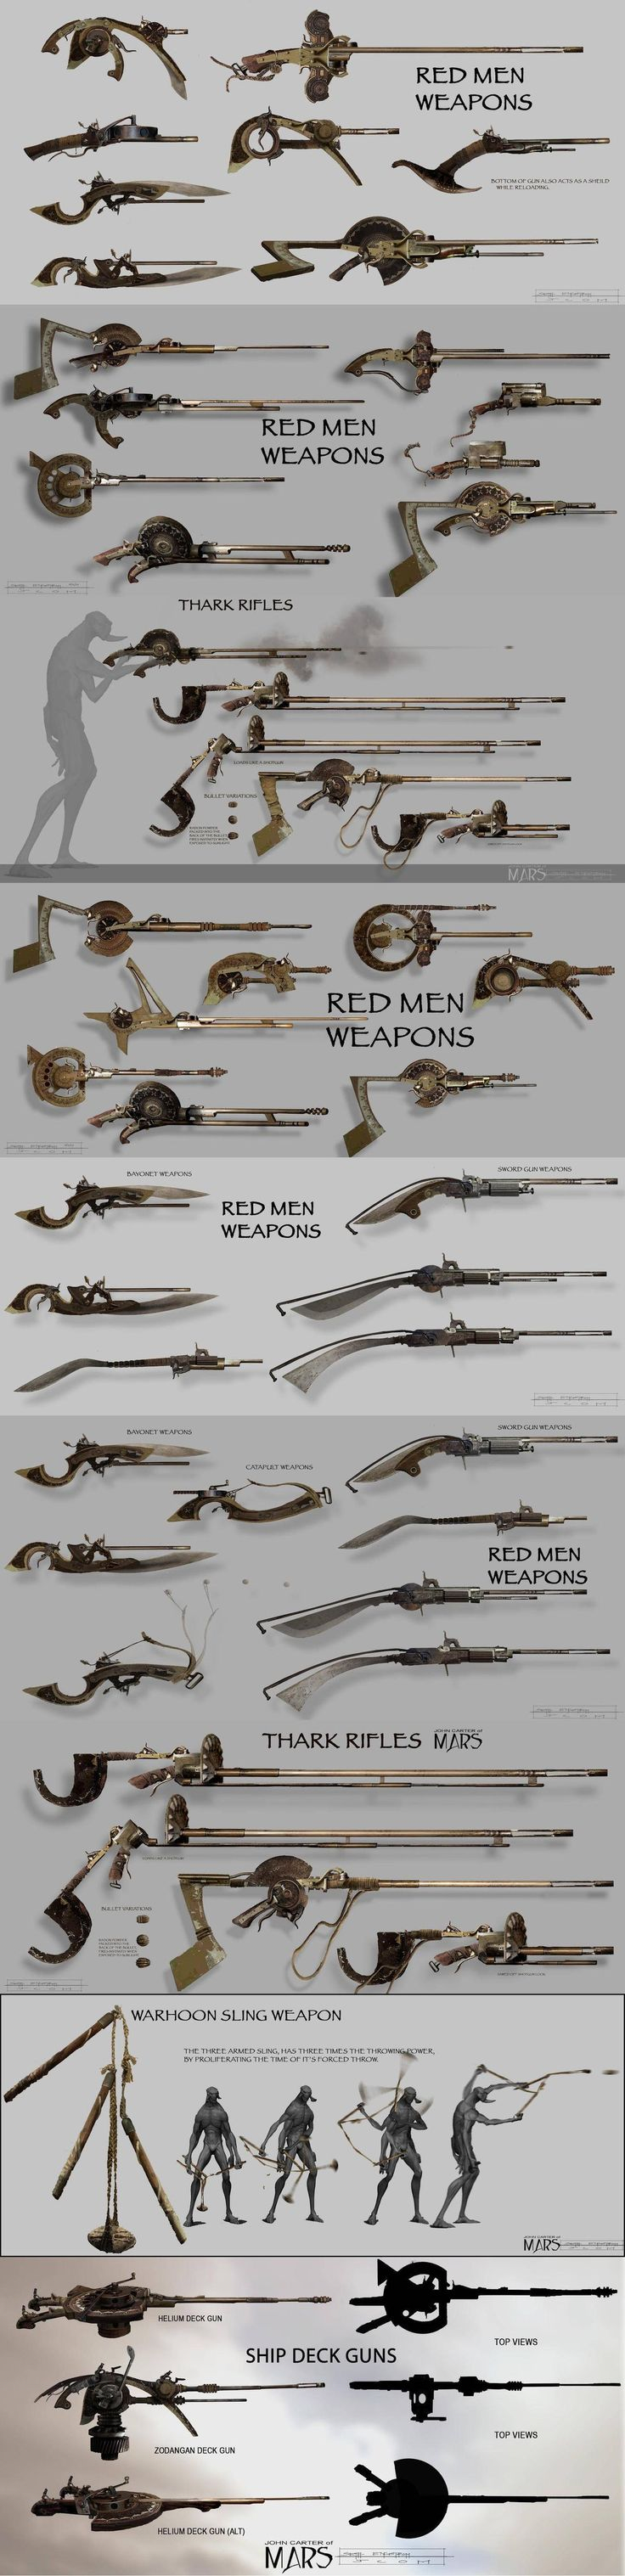 the weapons of John Carter of Mars